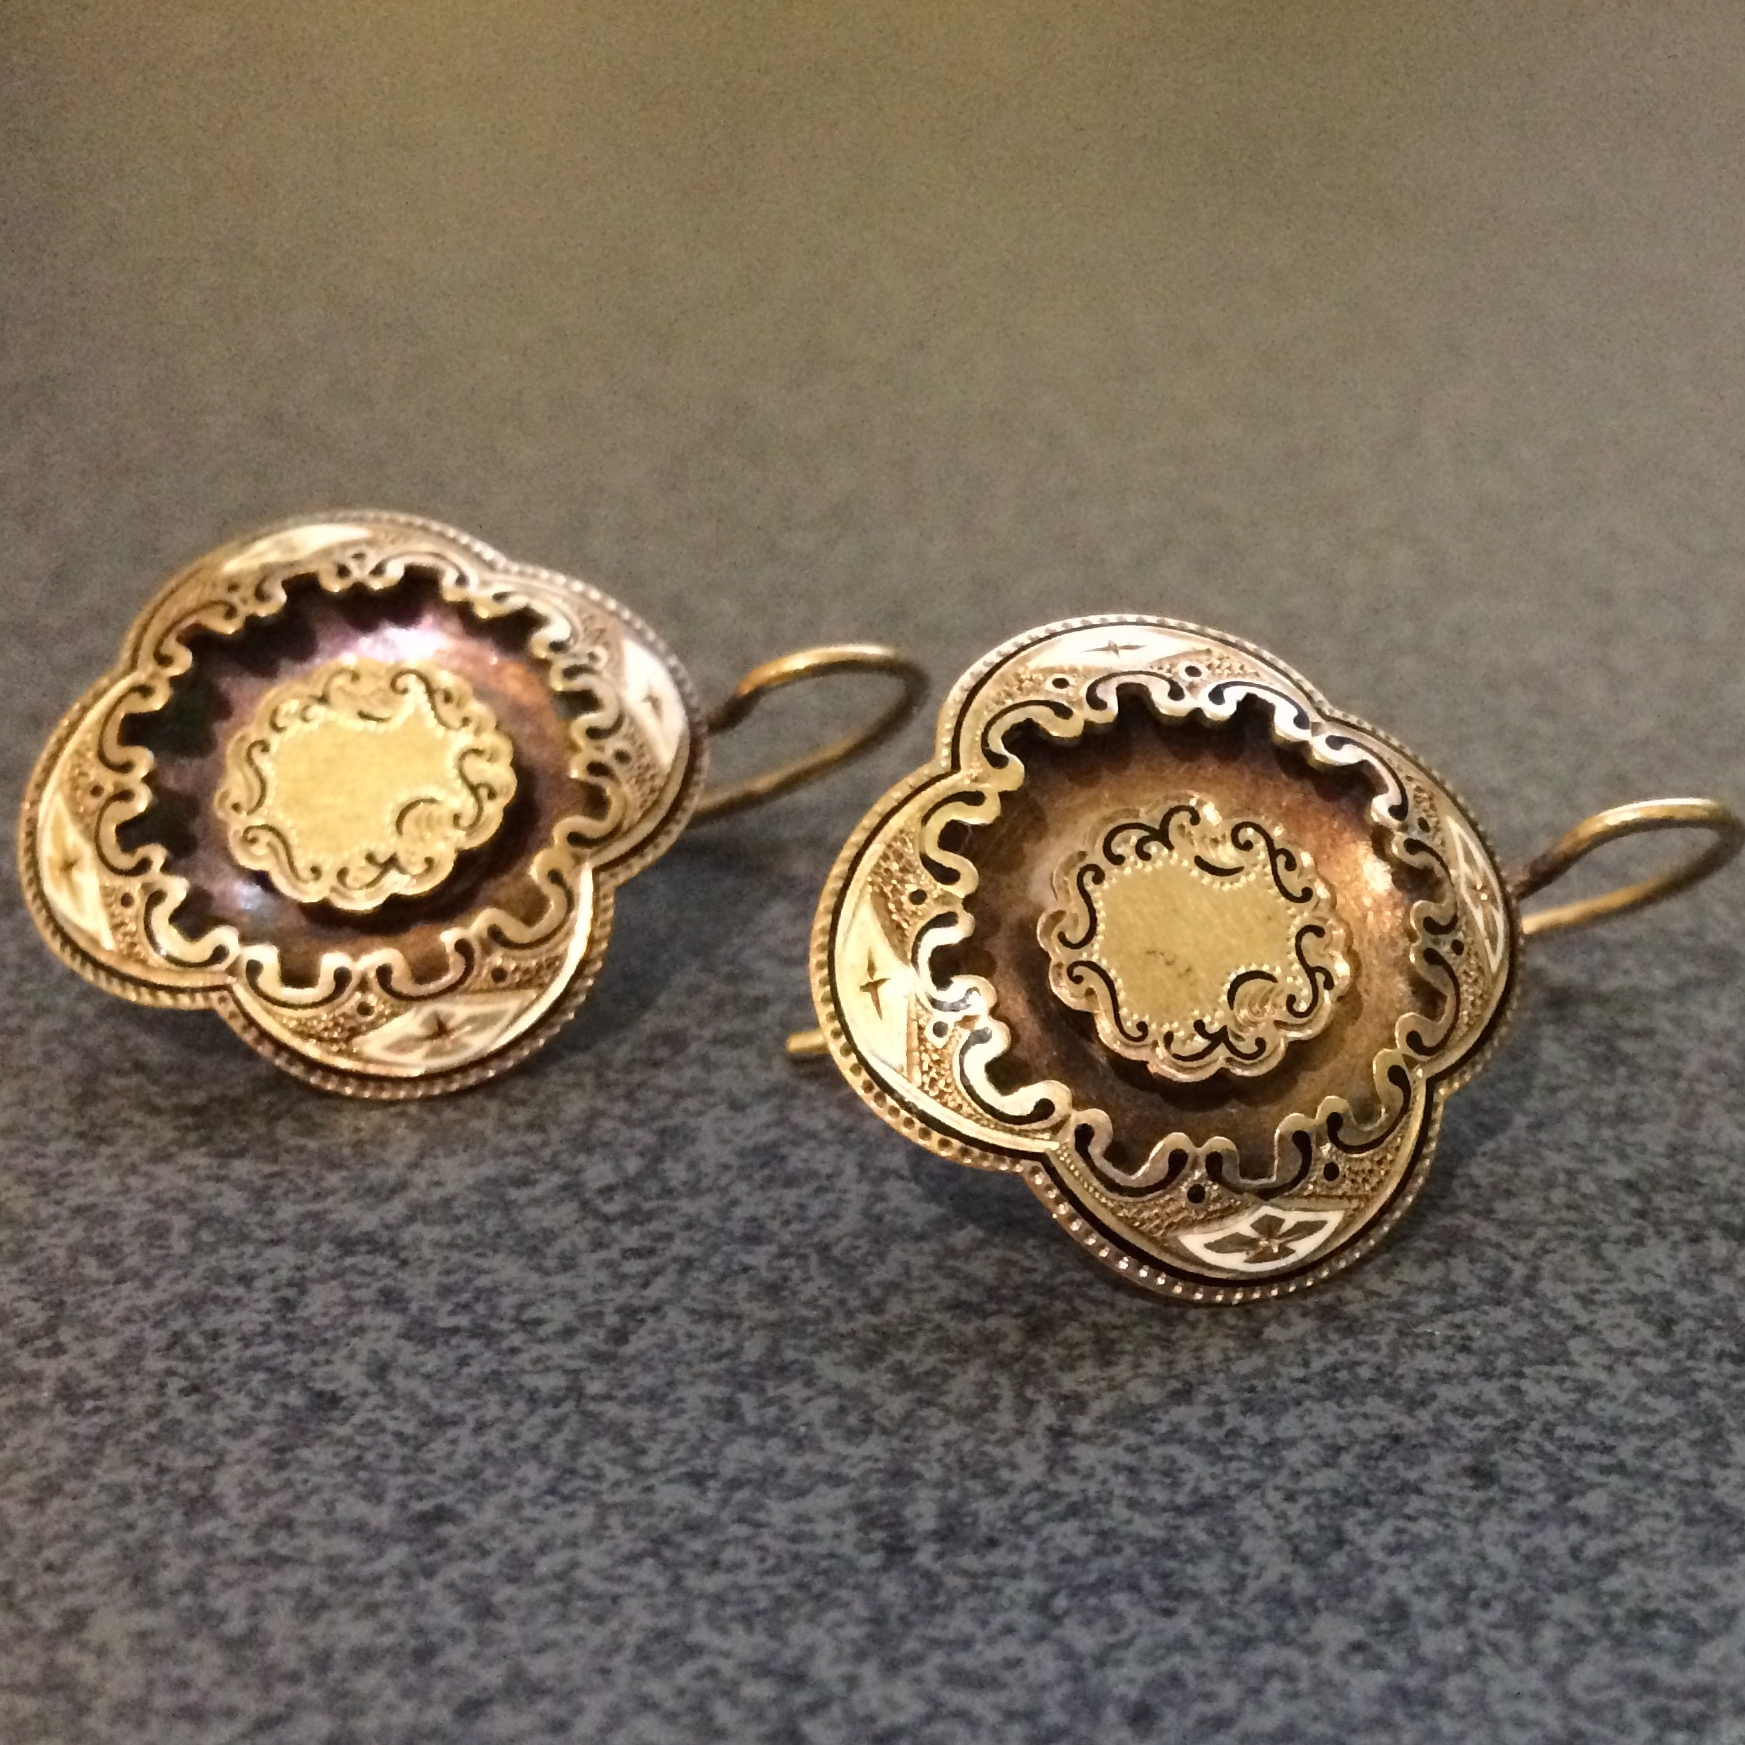 dsf jewelry co tiffany earrings gold antique enamel